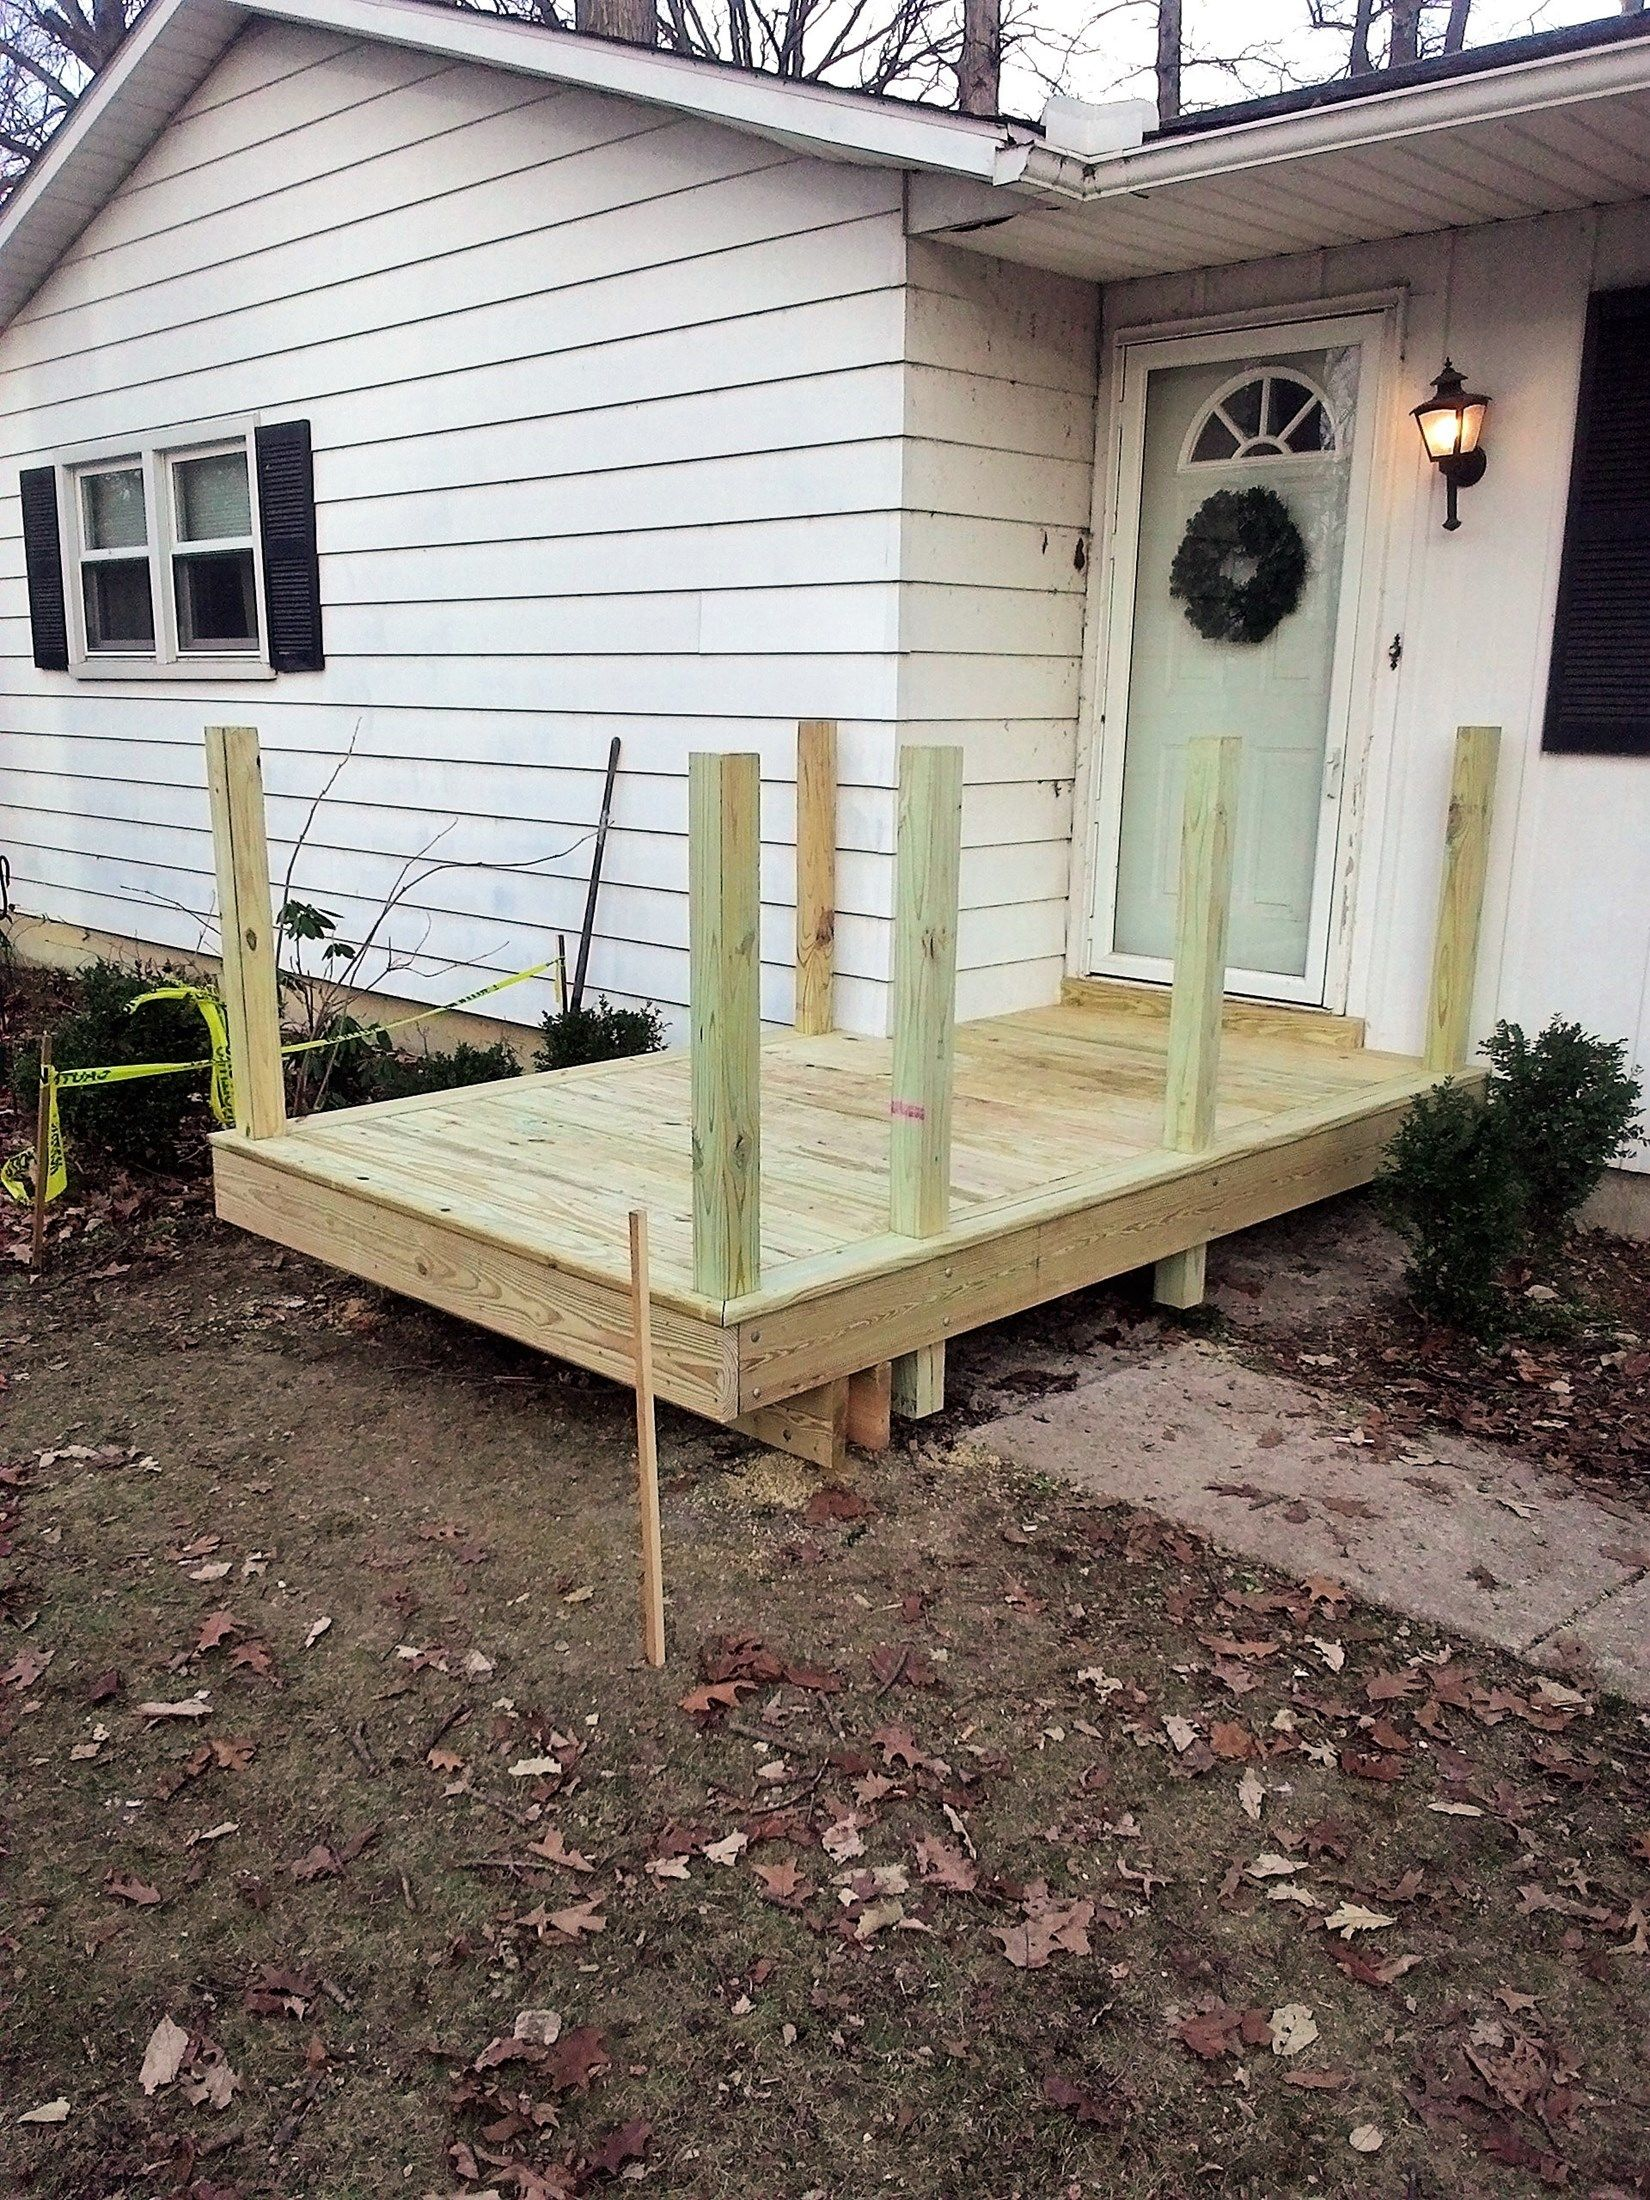 10 x 10 Front Porch Deck - Picture 6563